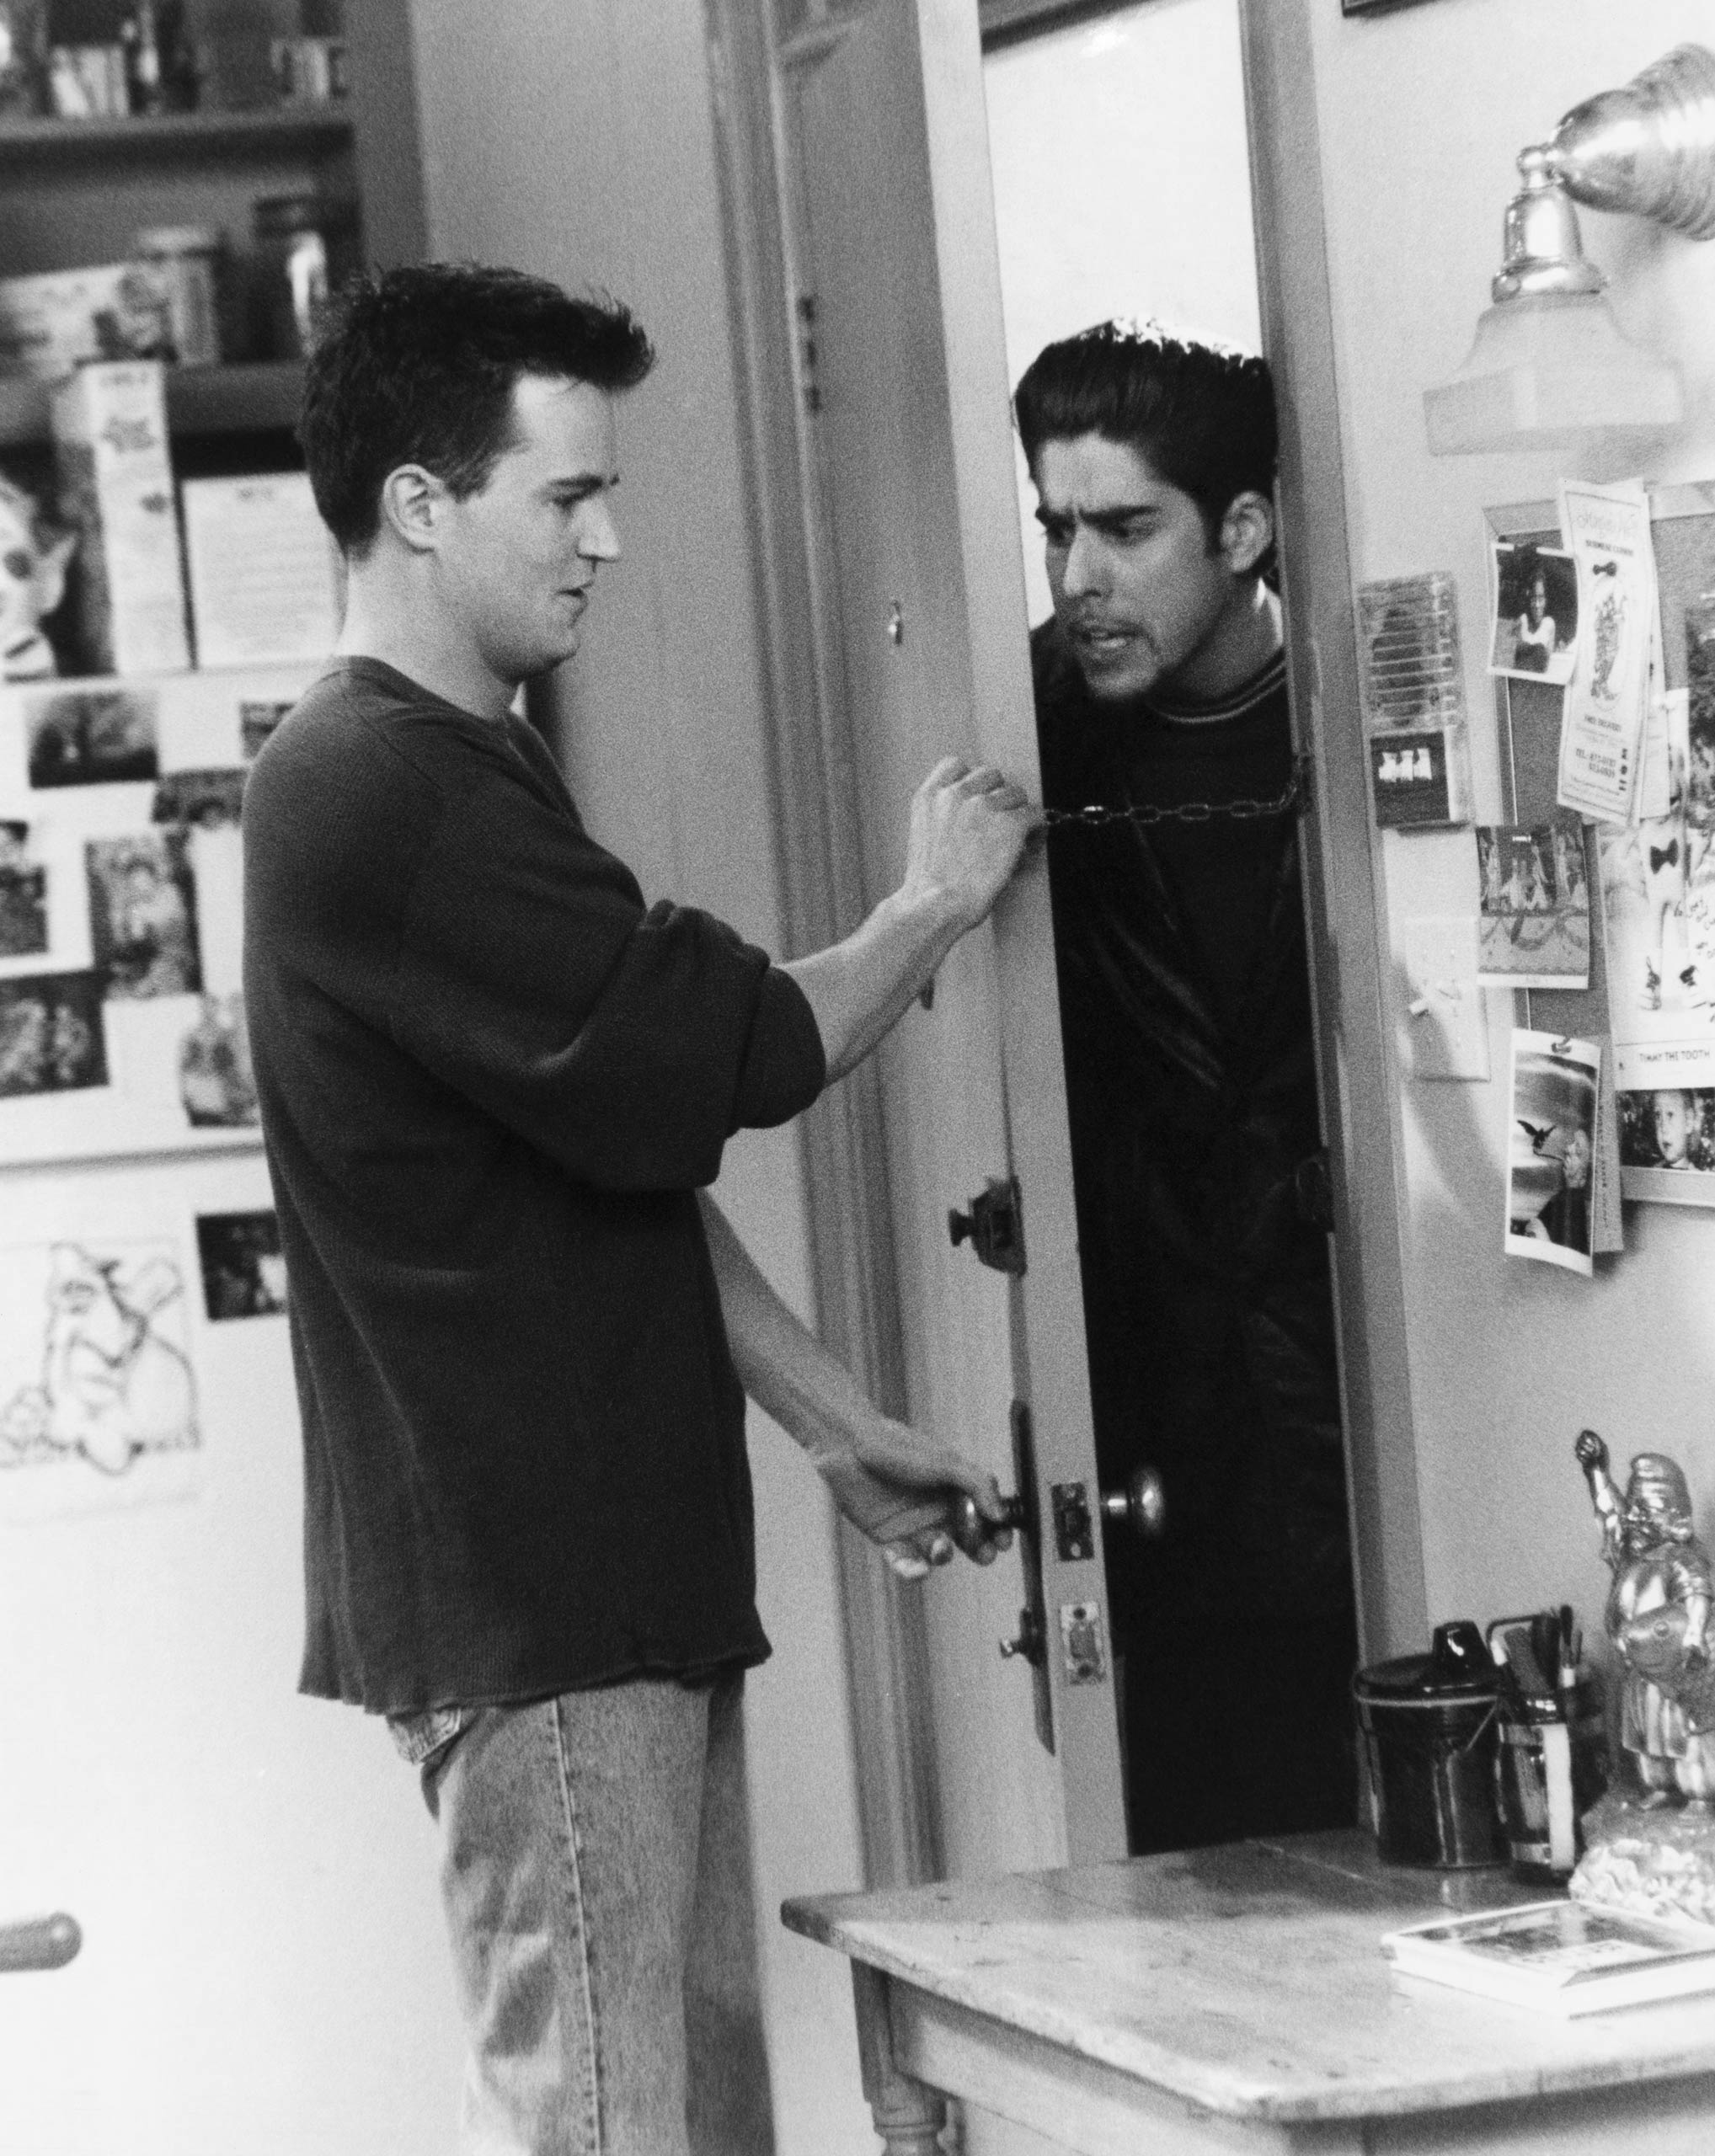 <strong>Adam Goldberg</strong> – After Joey moved out, Adam Goldberg played Eddie, Chandler's creepy roommate